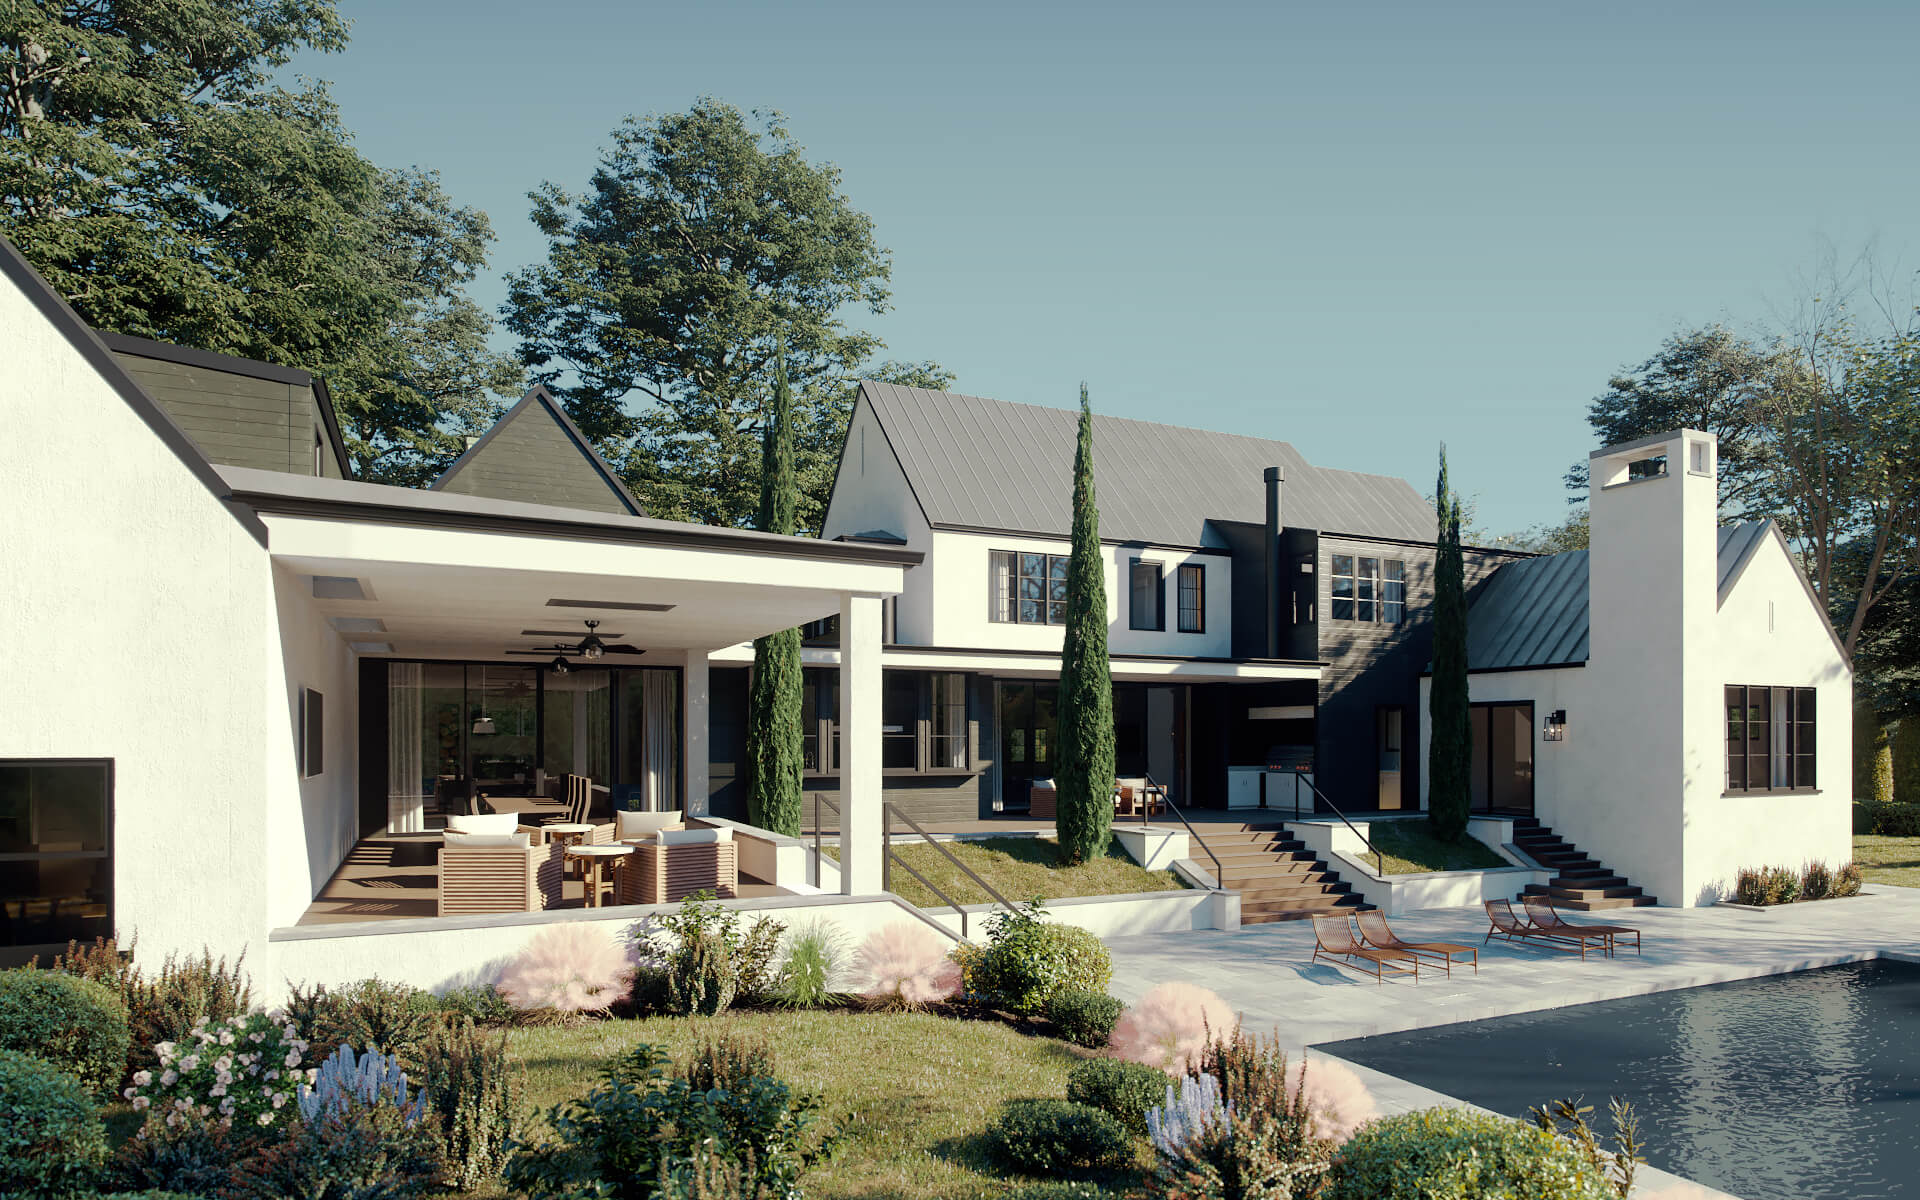 3D Rendering of a House with a Pool